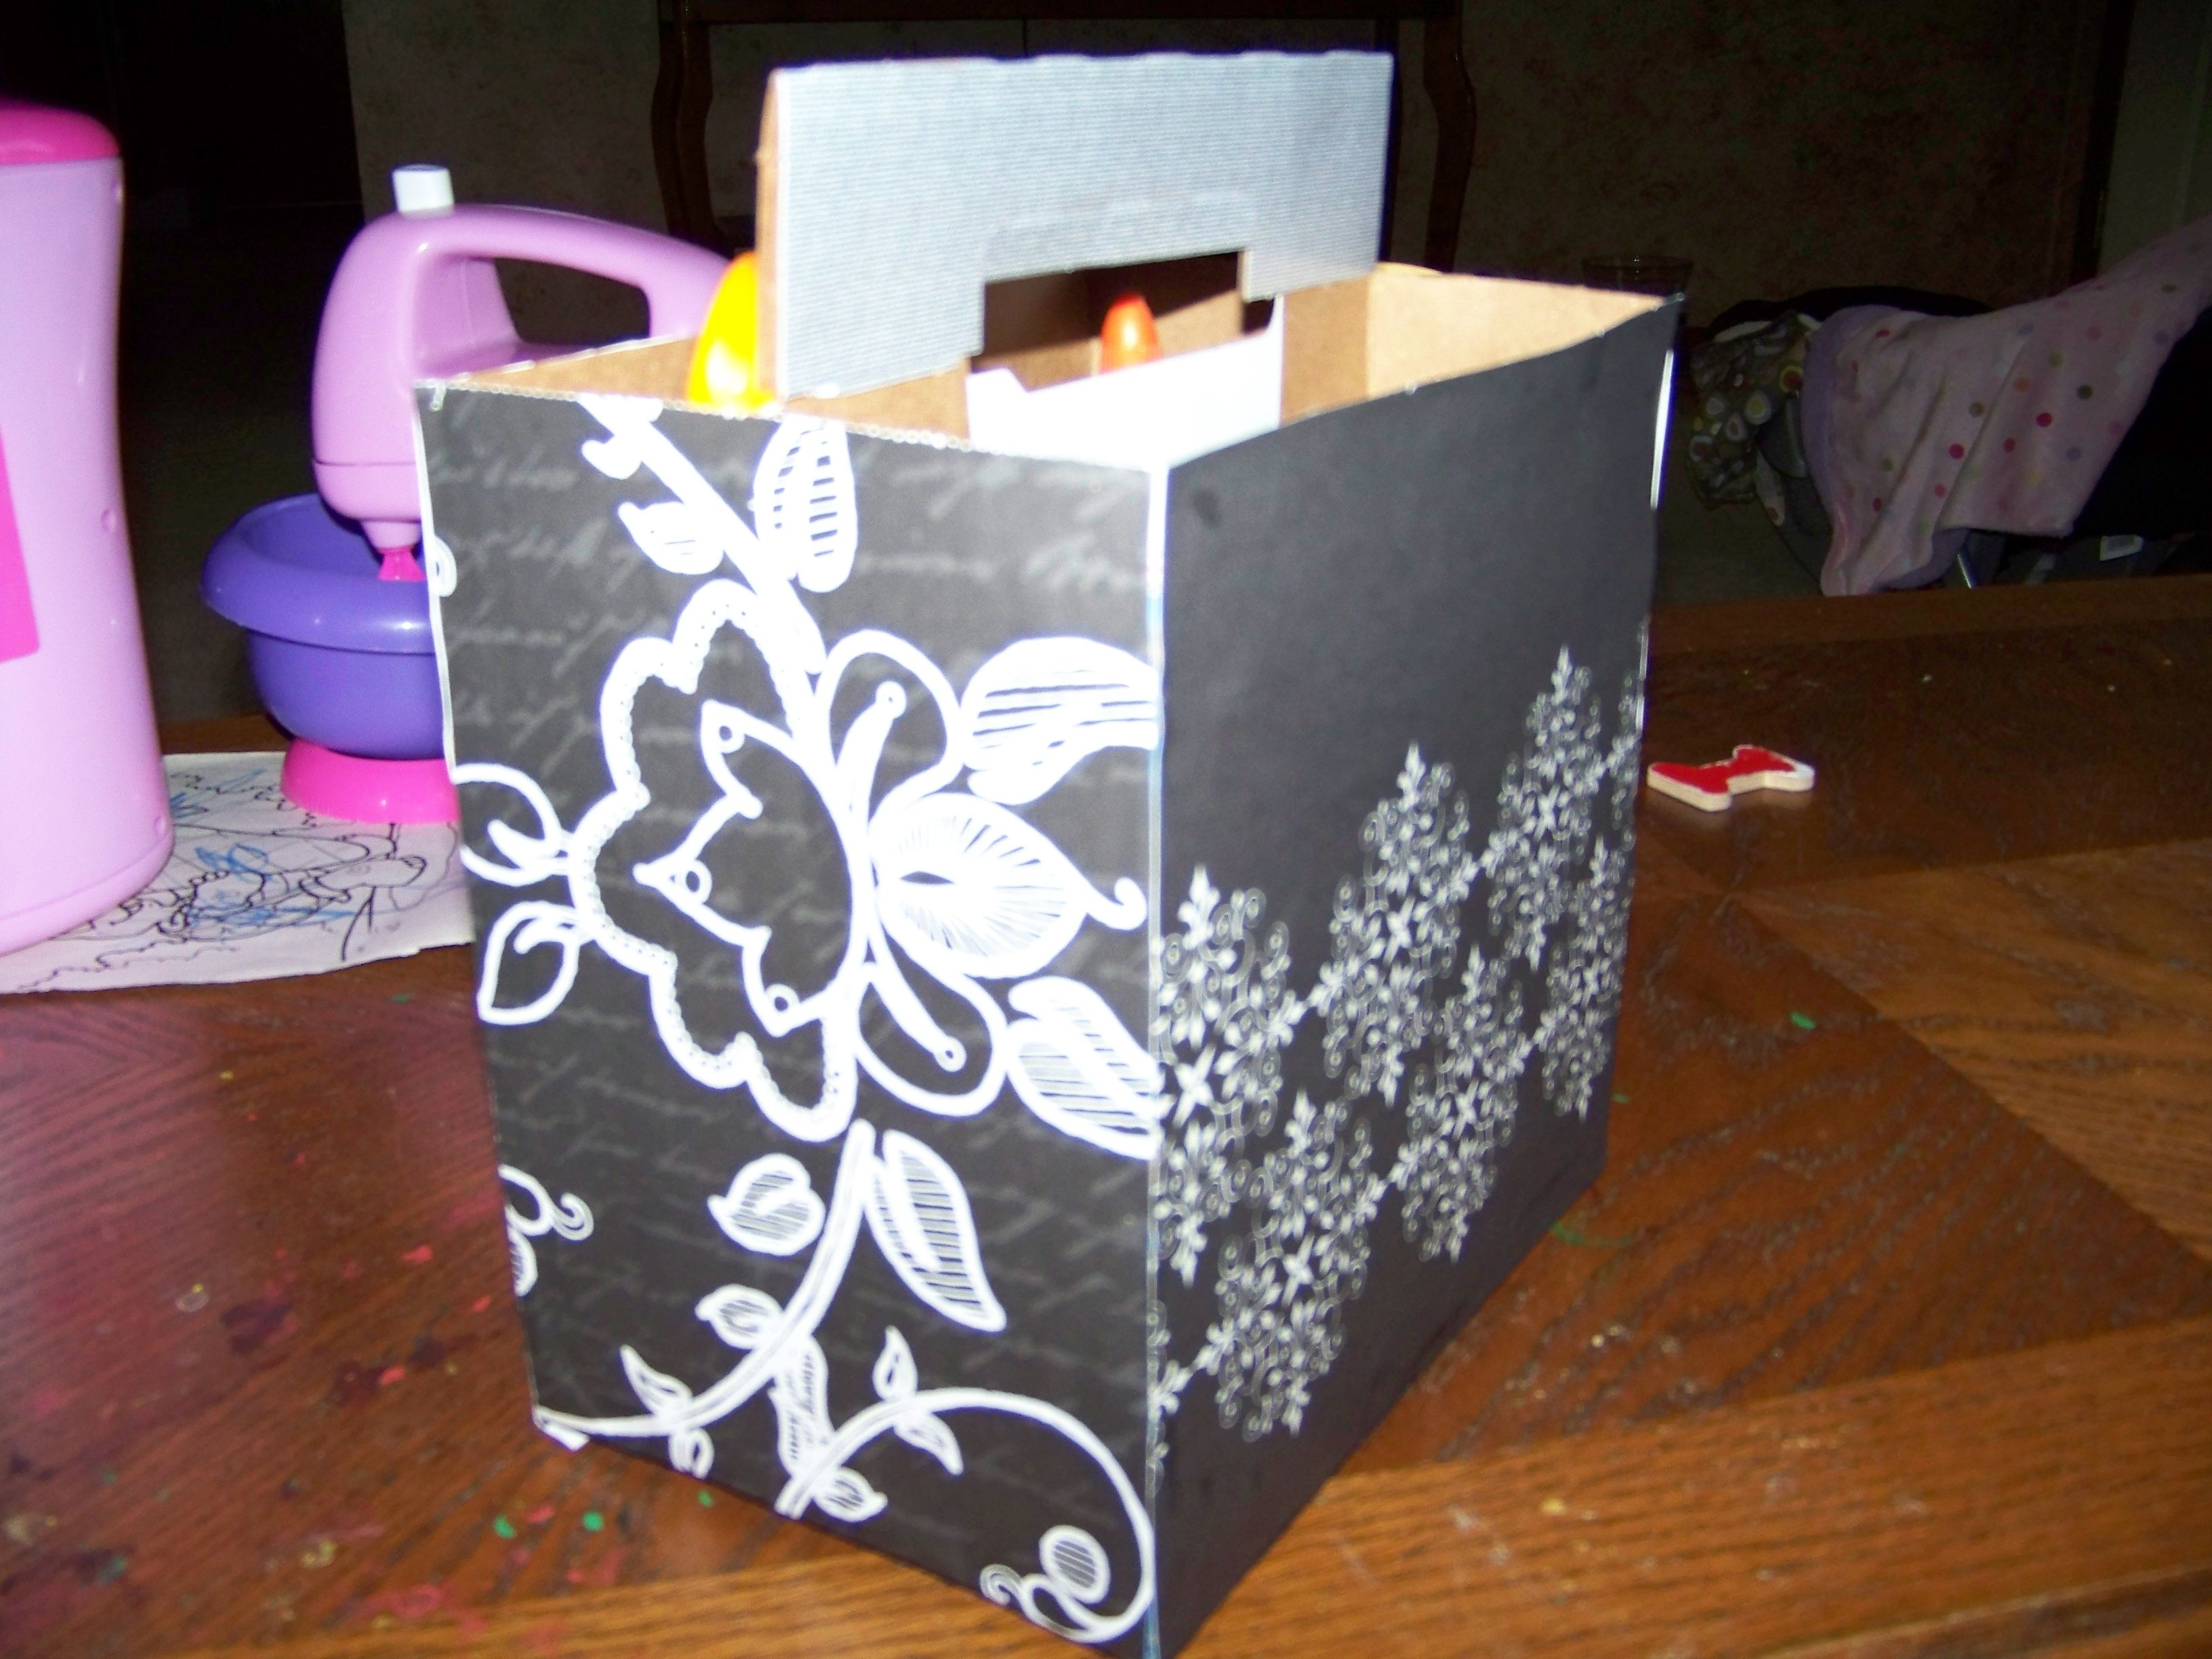 Scrapbook paper carrying case - I Took An Empty Six Pack Holder And Covered It In Scrapbook Paper To Make It